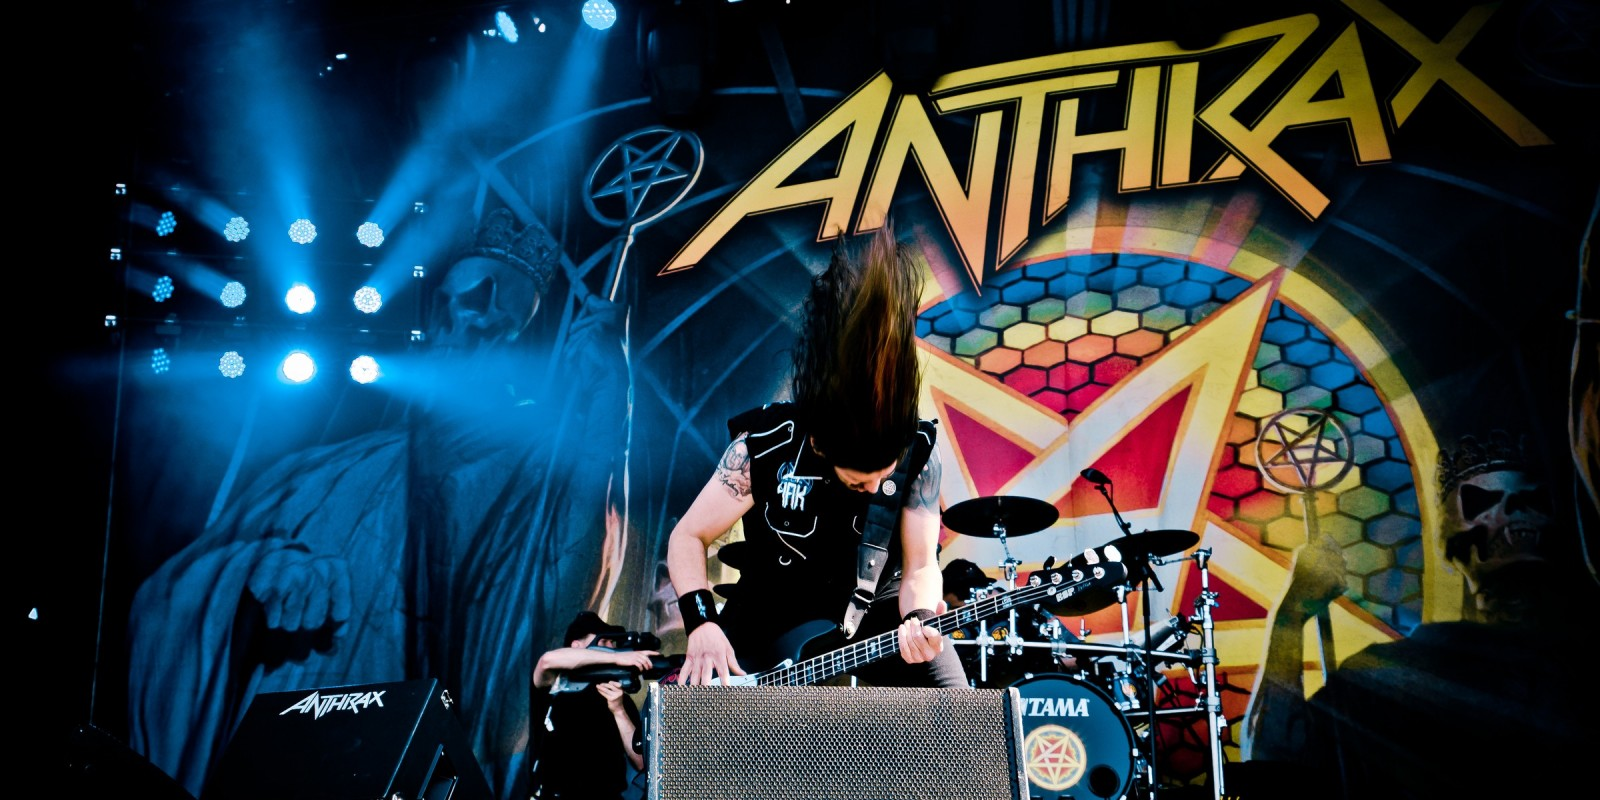 Live performance and meet and greet session photography of Anthrax at 2016 Carolina Rebellion Festival